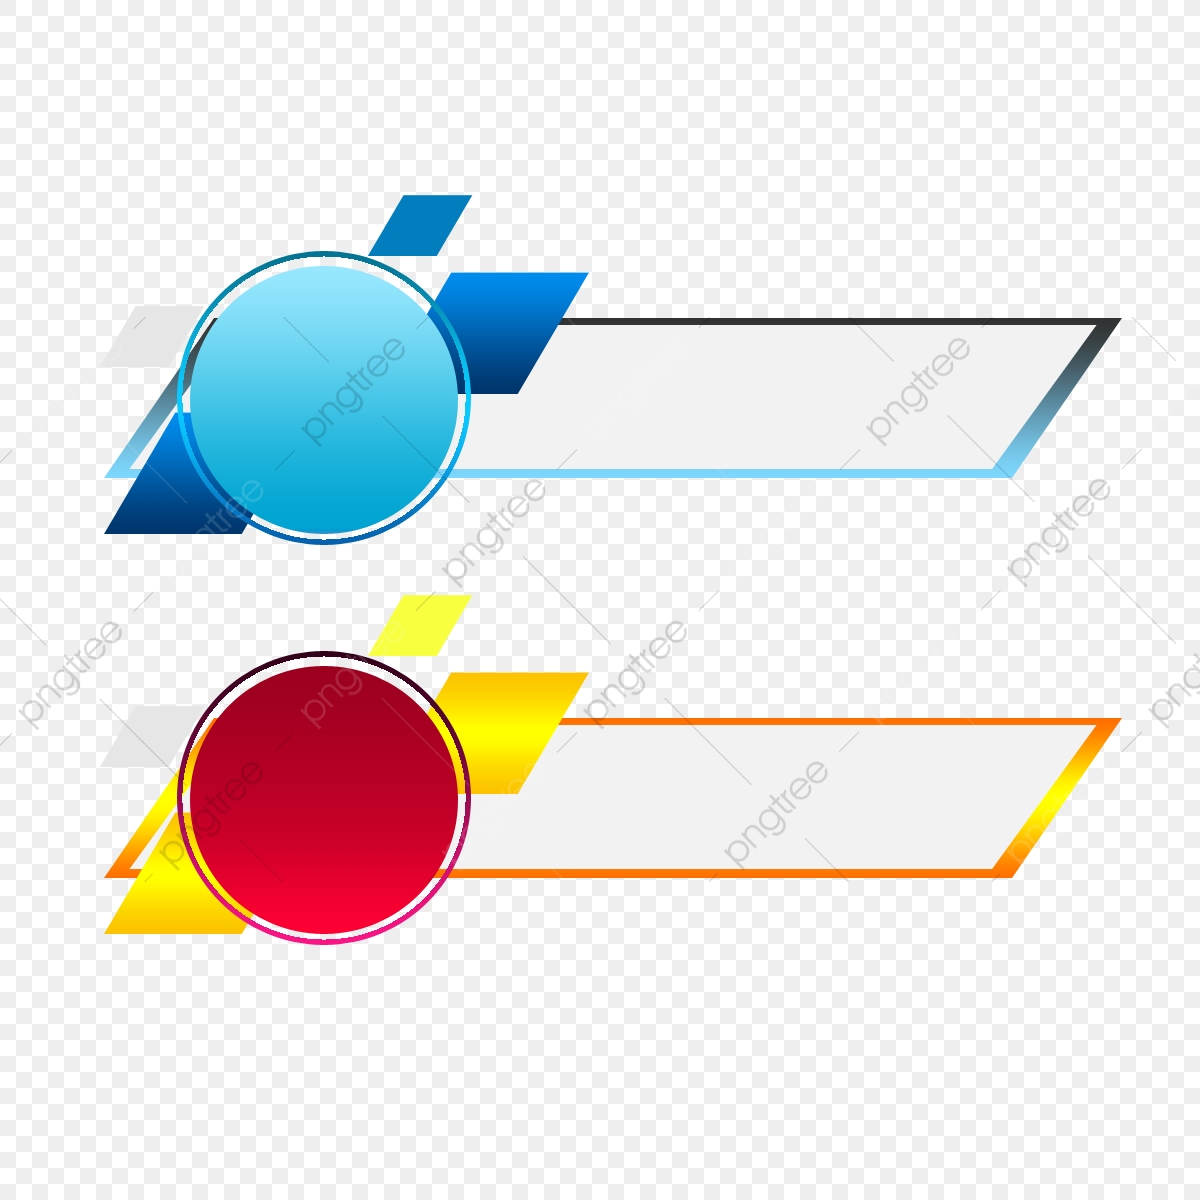 Latest Vector Banner For Video Png Free Download Download Icons Video Icons Banner Icons Png Transparent Clipart Image And Psd File For Free Download